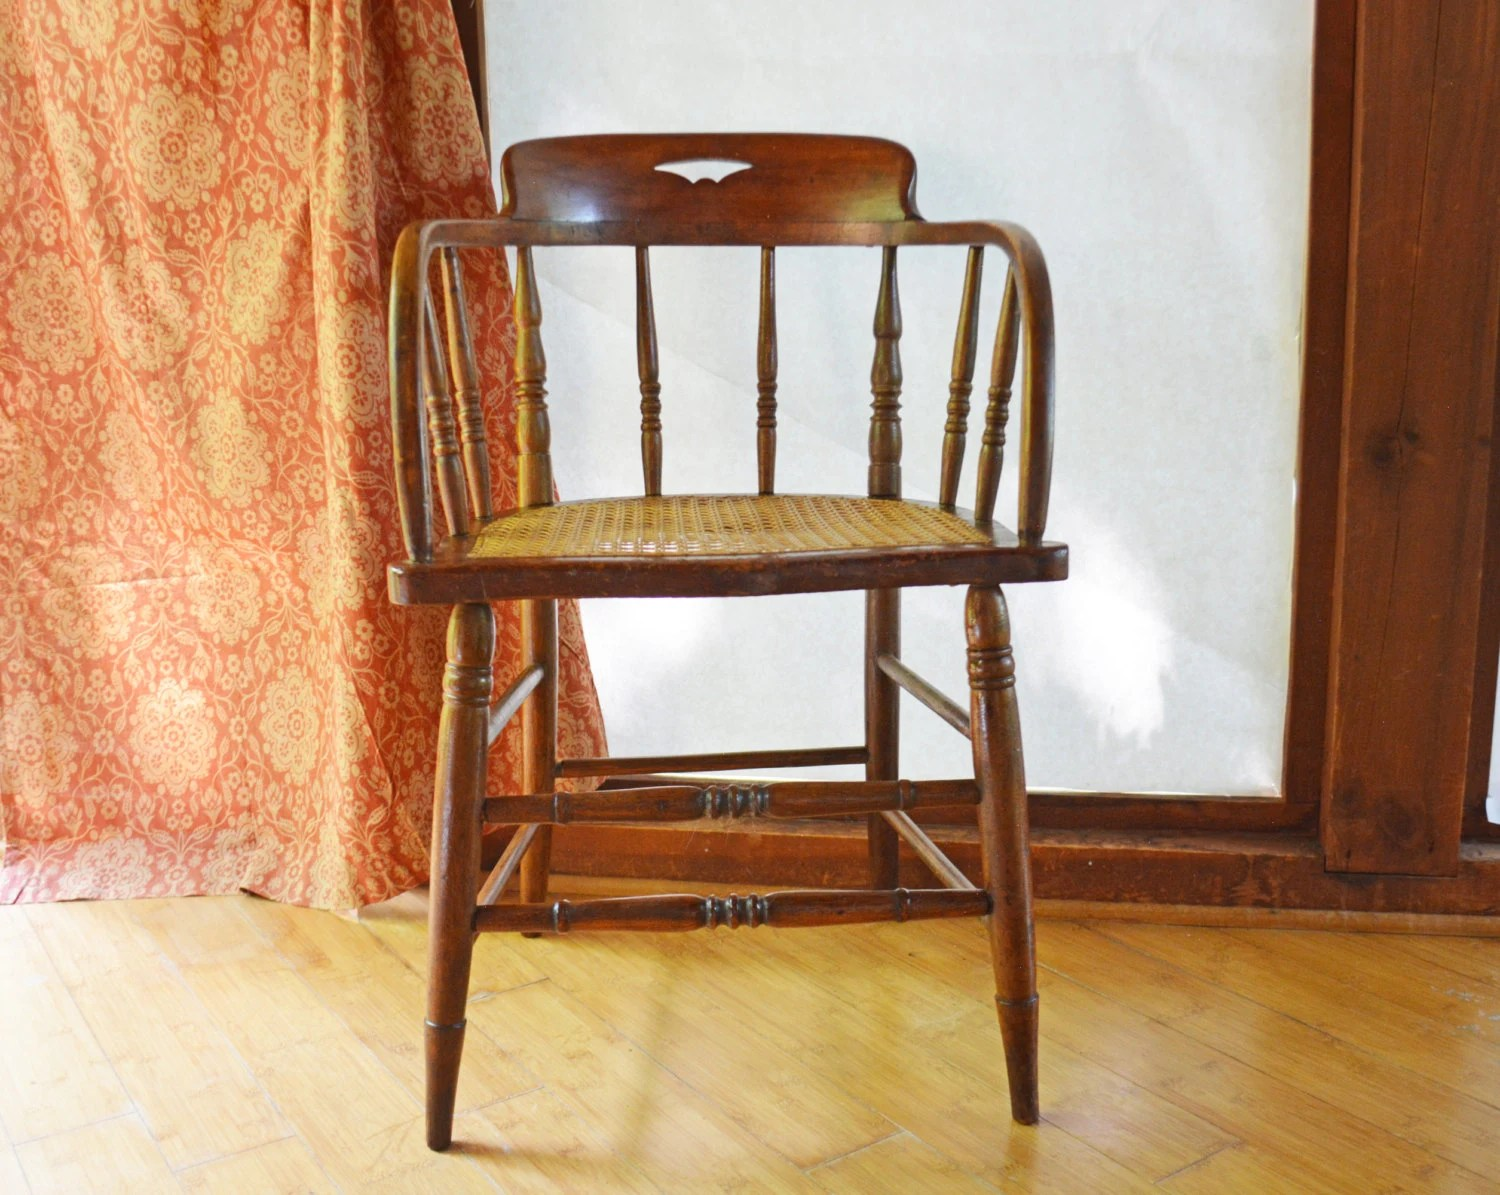 vintage wooden chairs swan high chair antique wood barrel back small captains